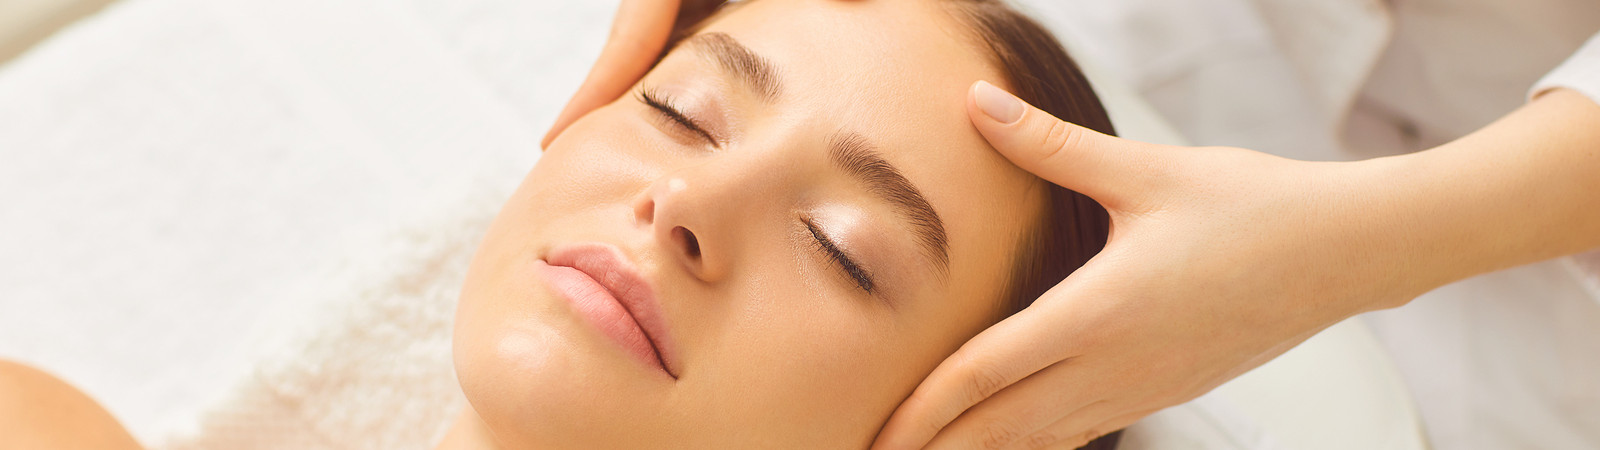 How To Make Your Facial Treatment Last Longer